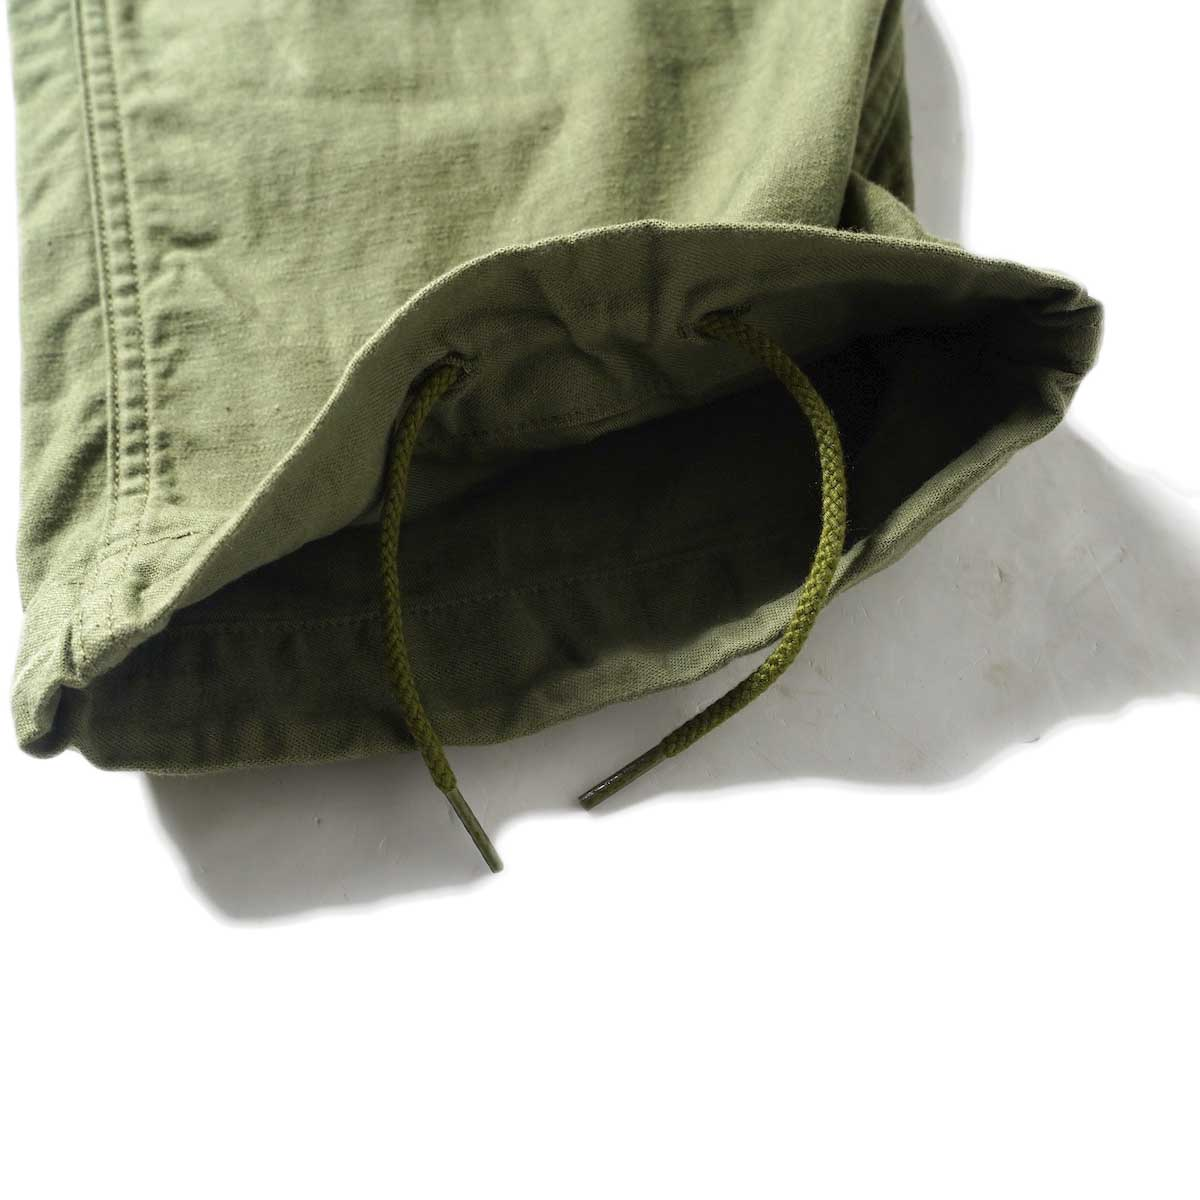 Needles / STRING FATIGUE PANT - BACK SATEEN (Olive)裾内側